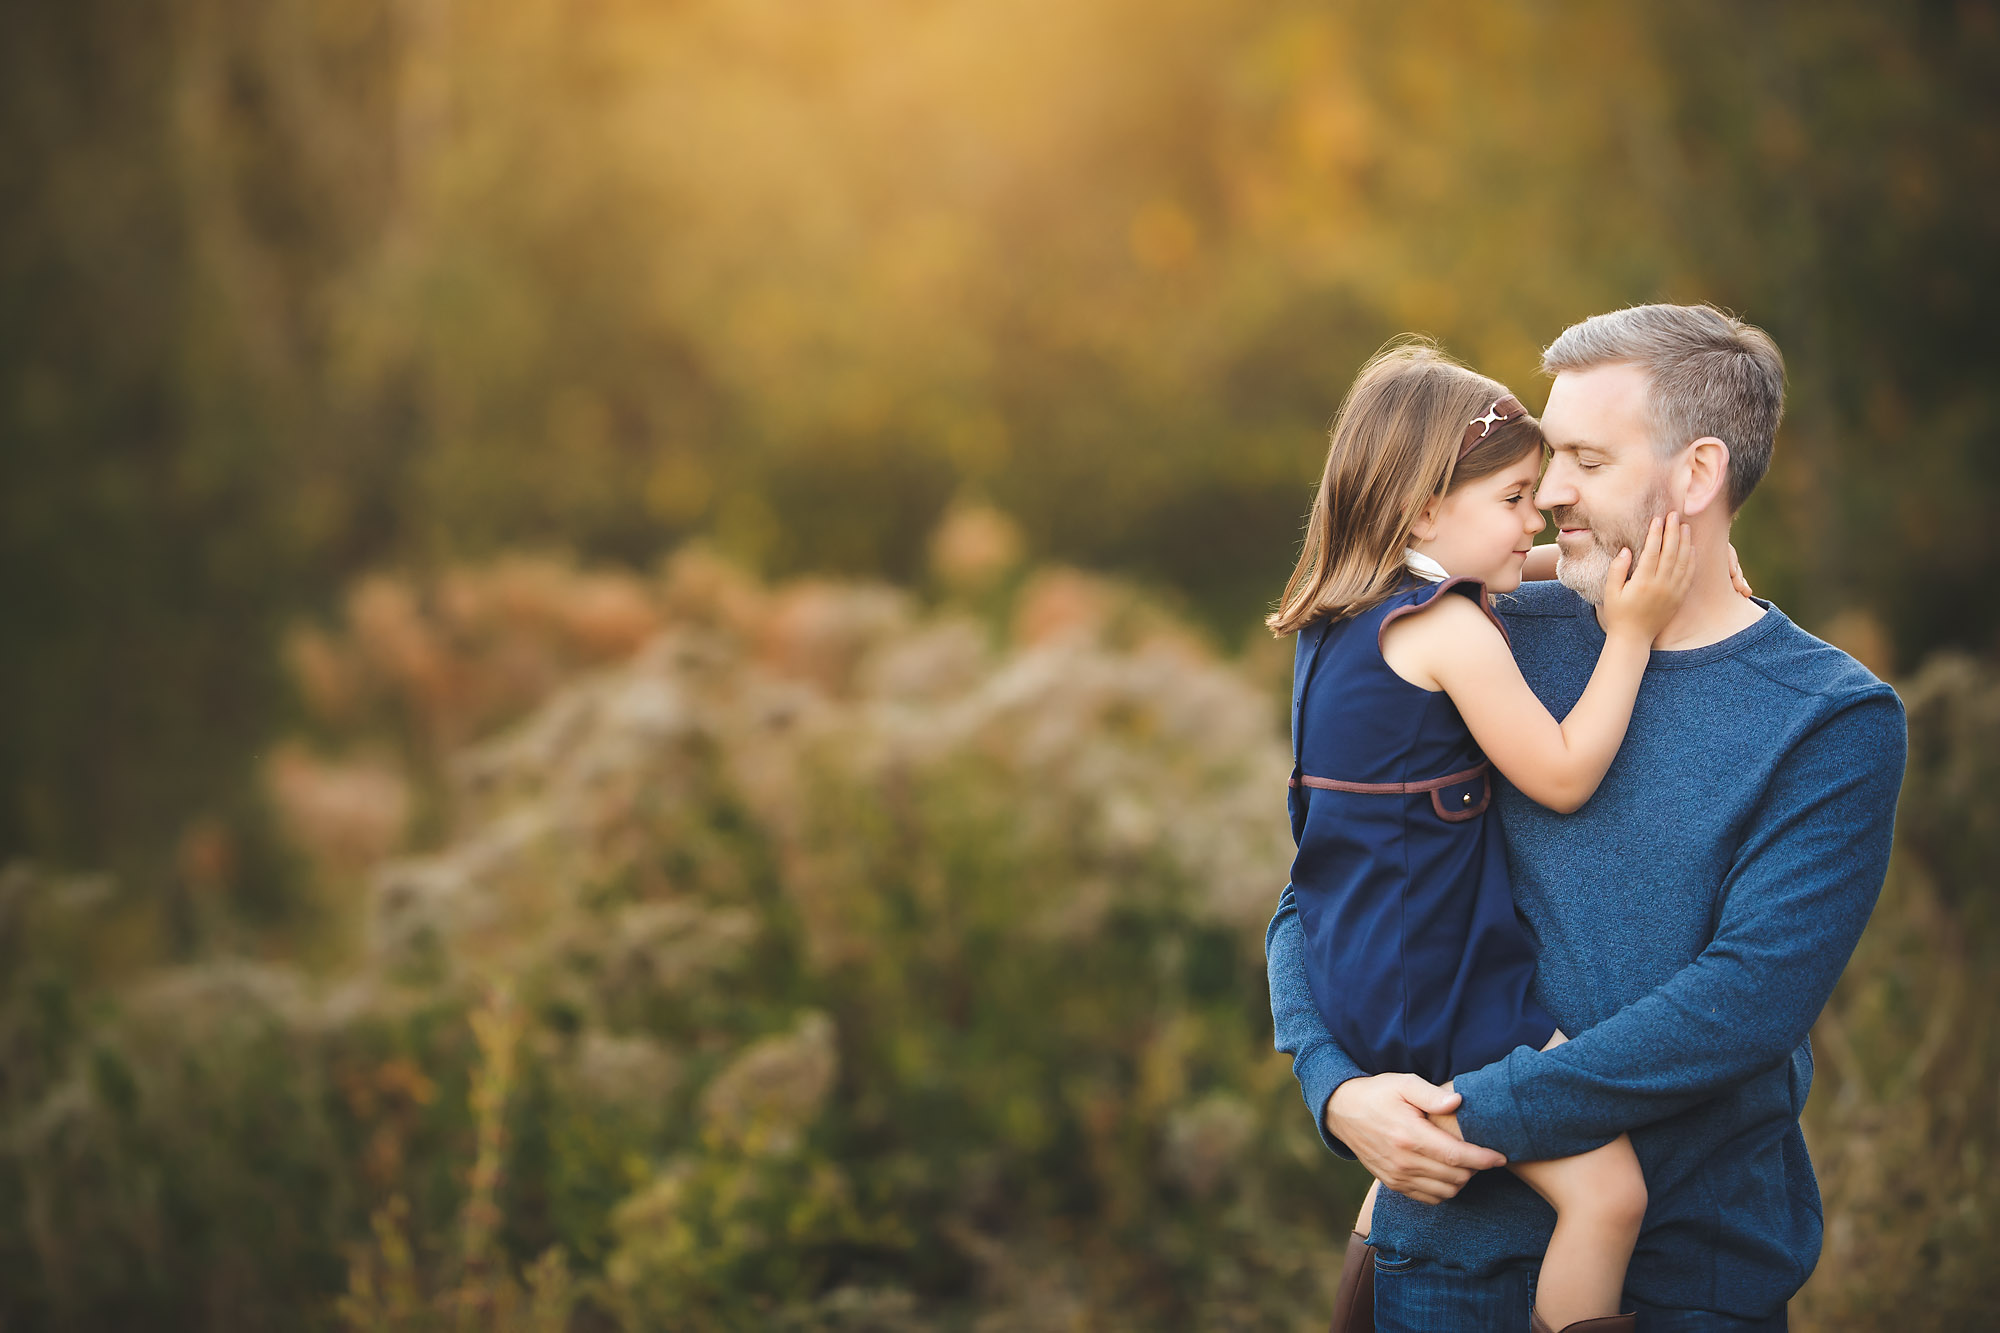 Father daughter portrait from photography session with Rebecca Danzenbaker in Northern Virginia